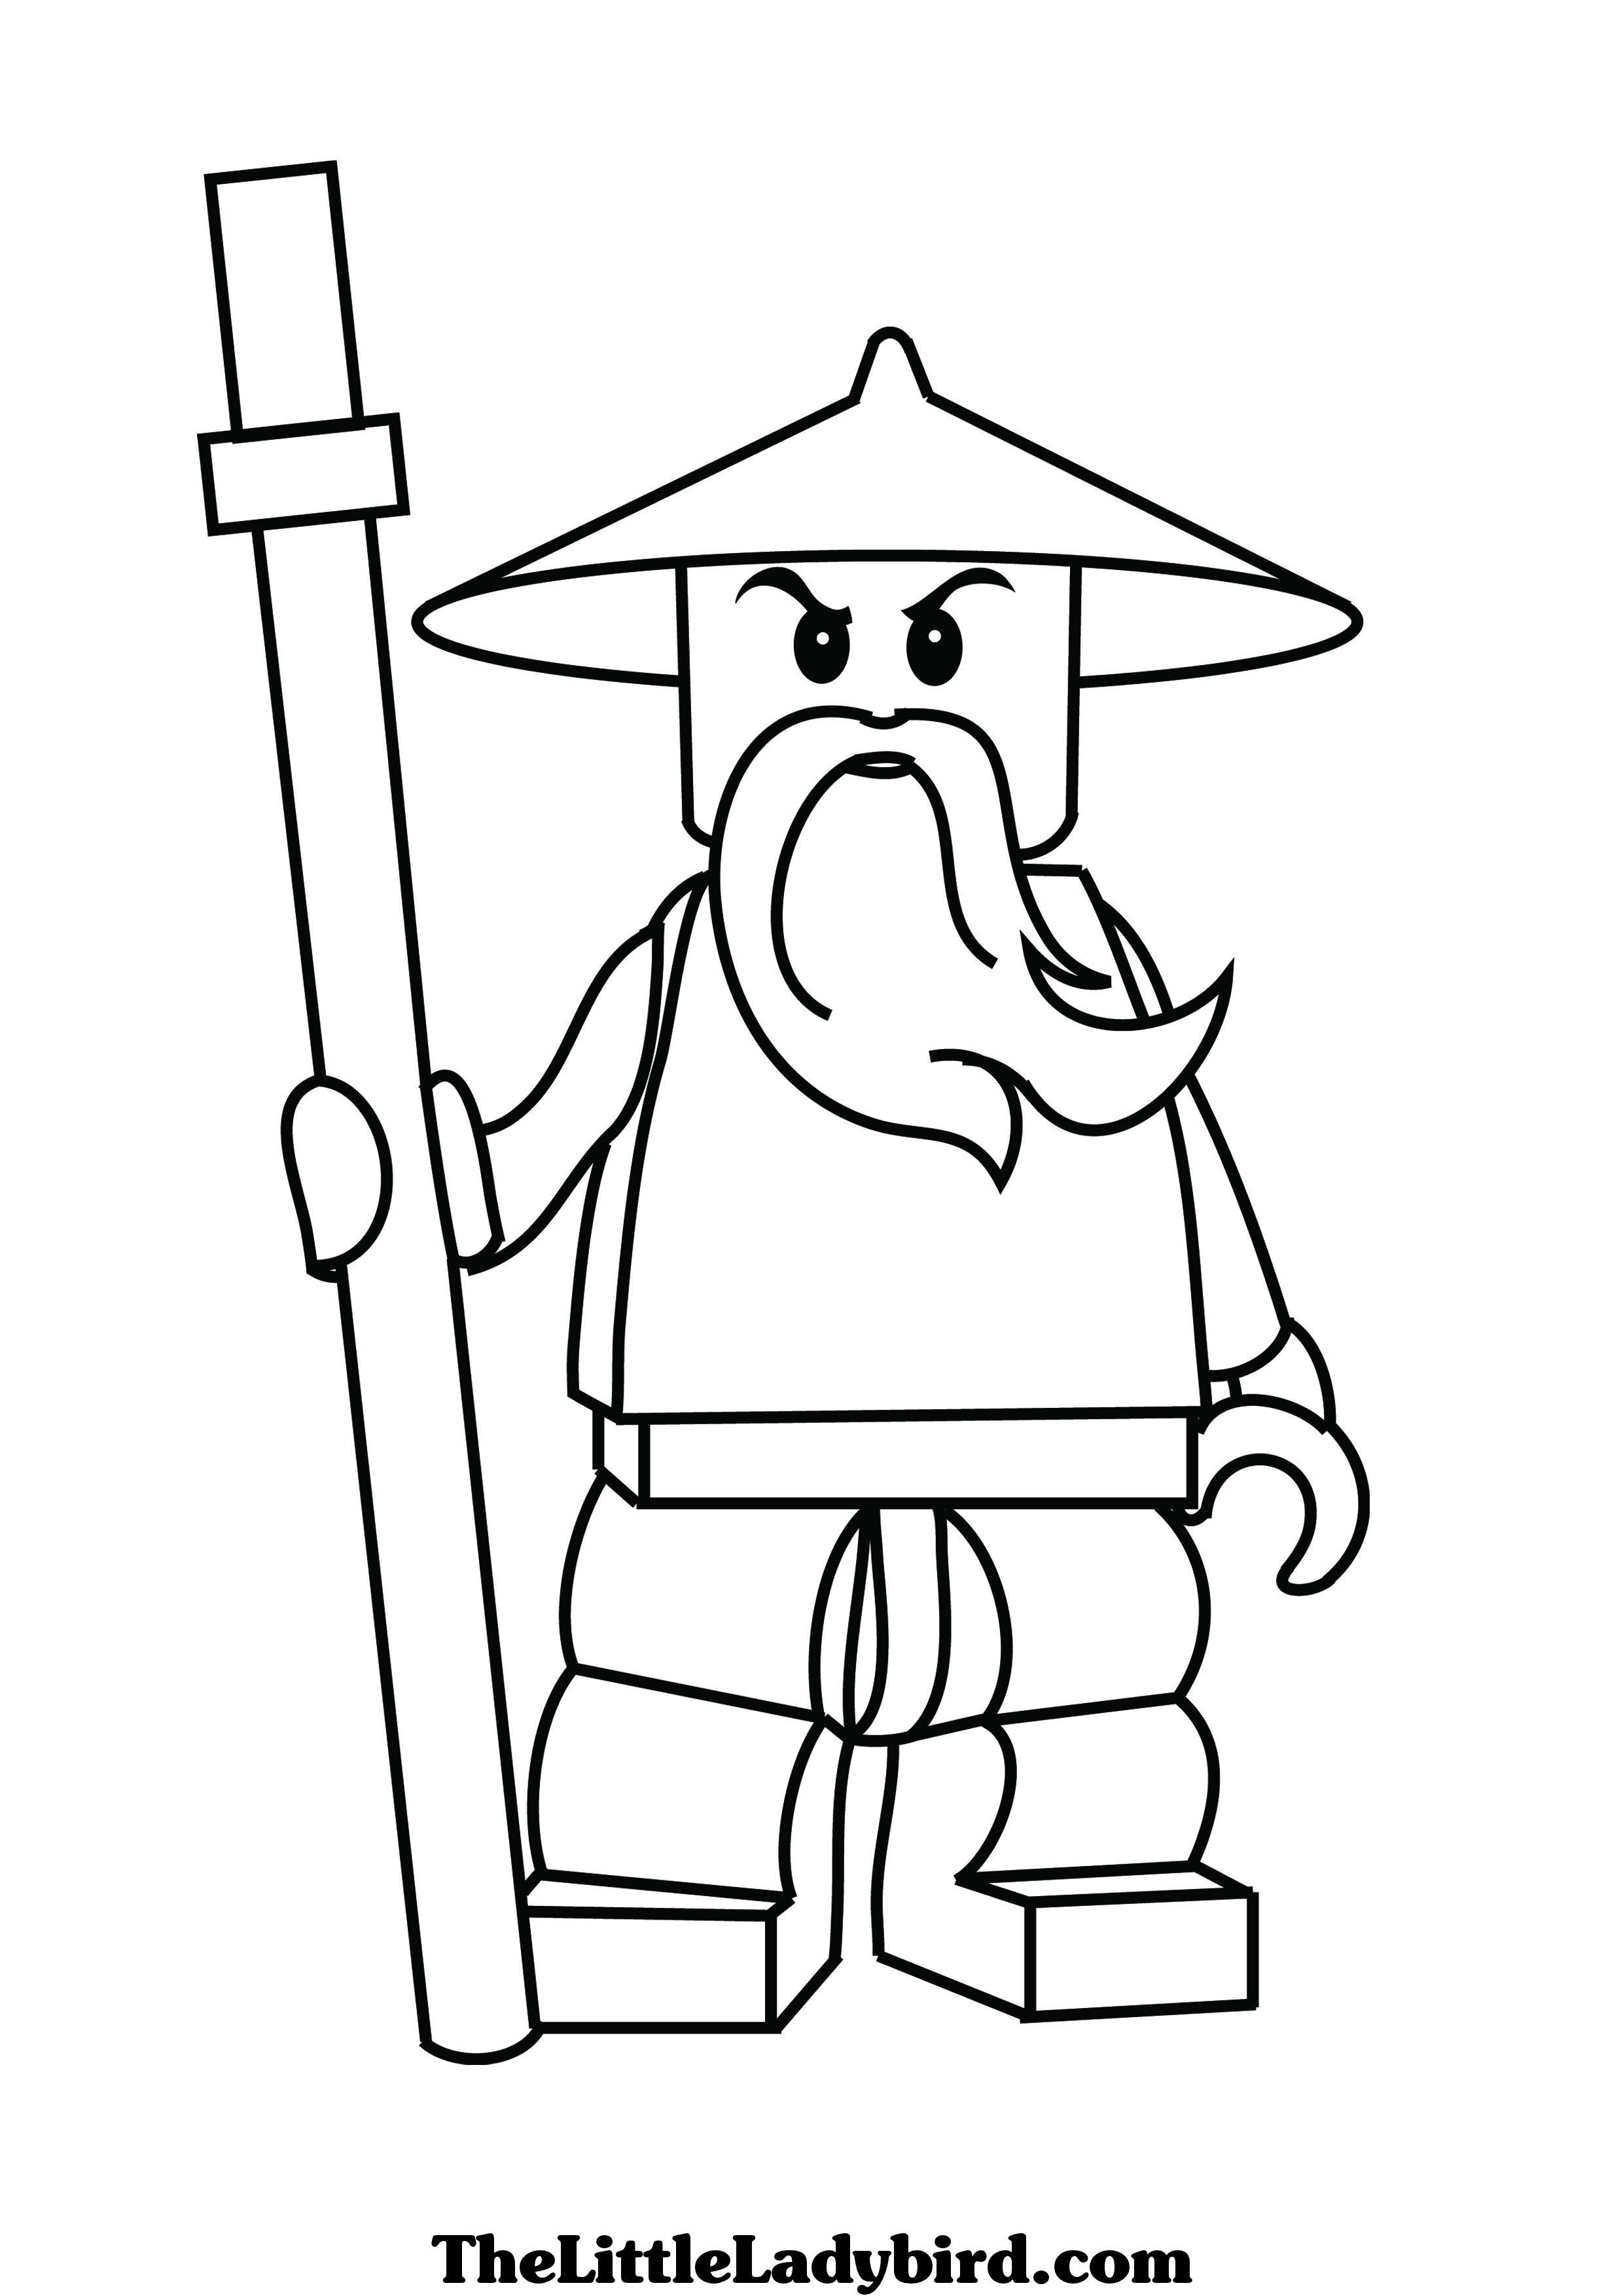 Ninjago coloring pages to color online - Lego Coloring Pages Lego Ninjago Printable Coloring Pages Online Create Coloring Book To Give As Party Favor